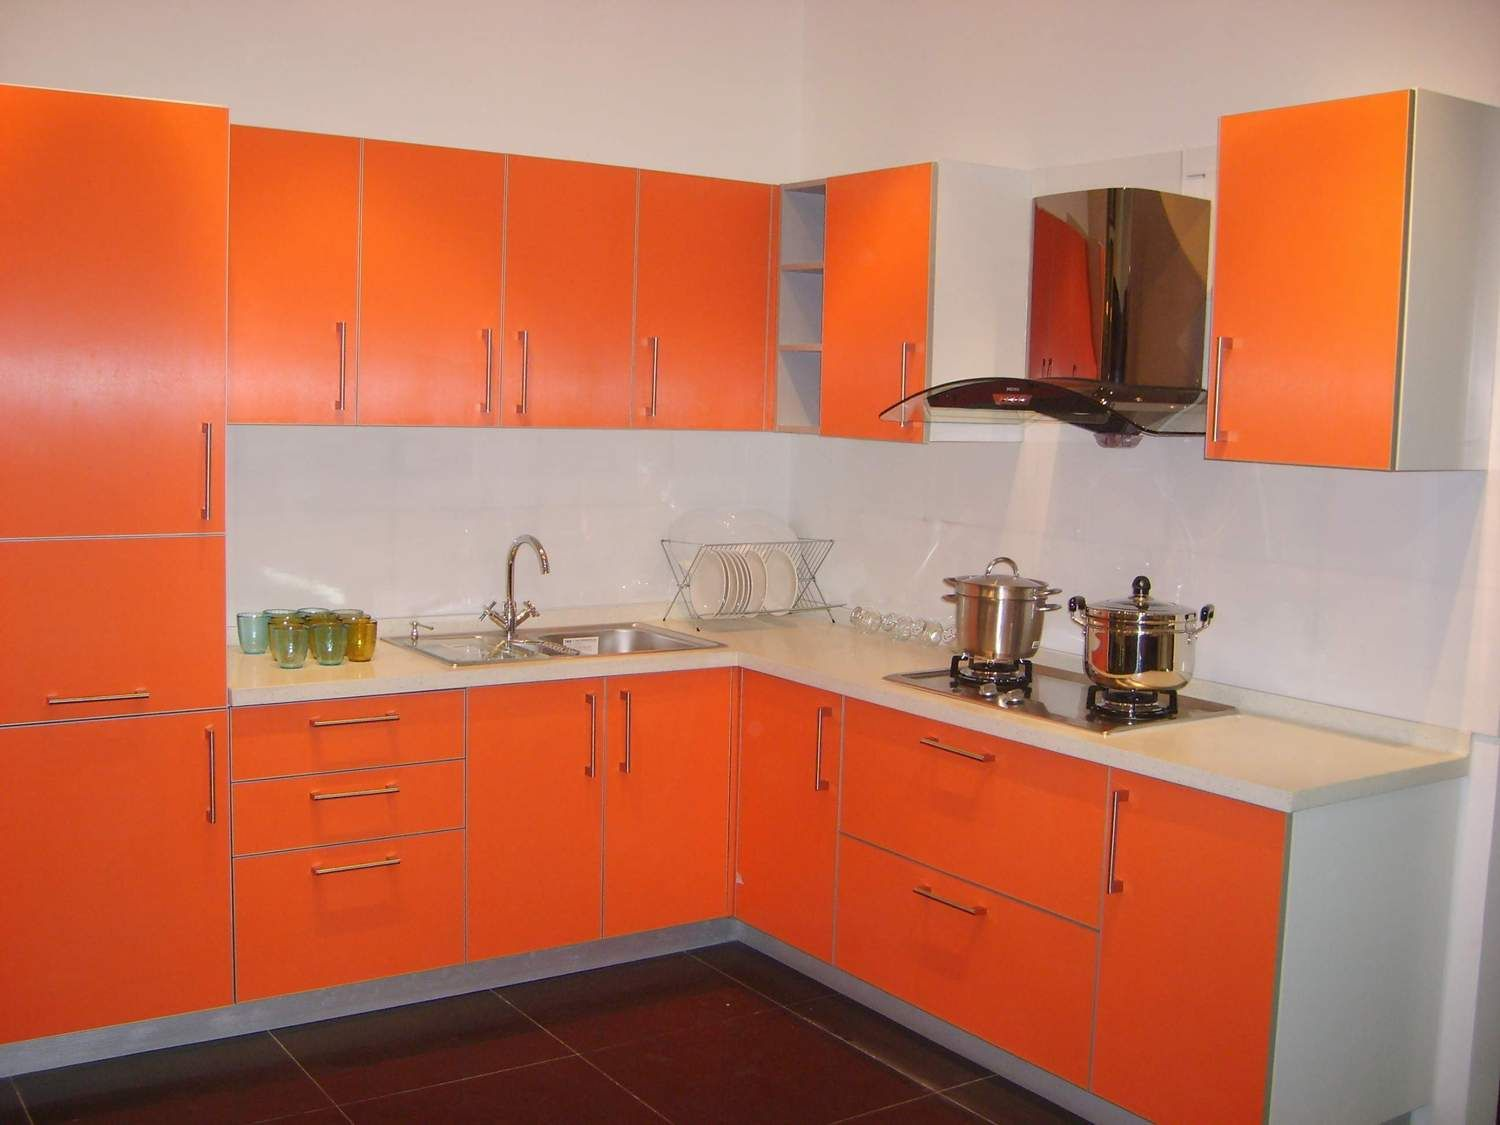 Red And Orange Kitchen Ideas Part - 35: Stylish Orange Kitchen Designs For A Lighter Look : Delightful Orange And  White Kitchen Decoration With Black Ceramic Tiles Flooring And Ora.